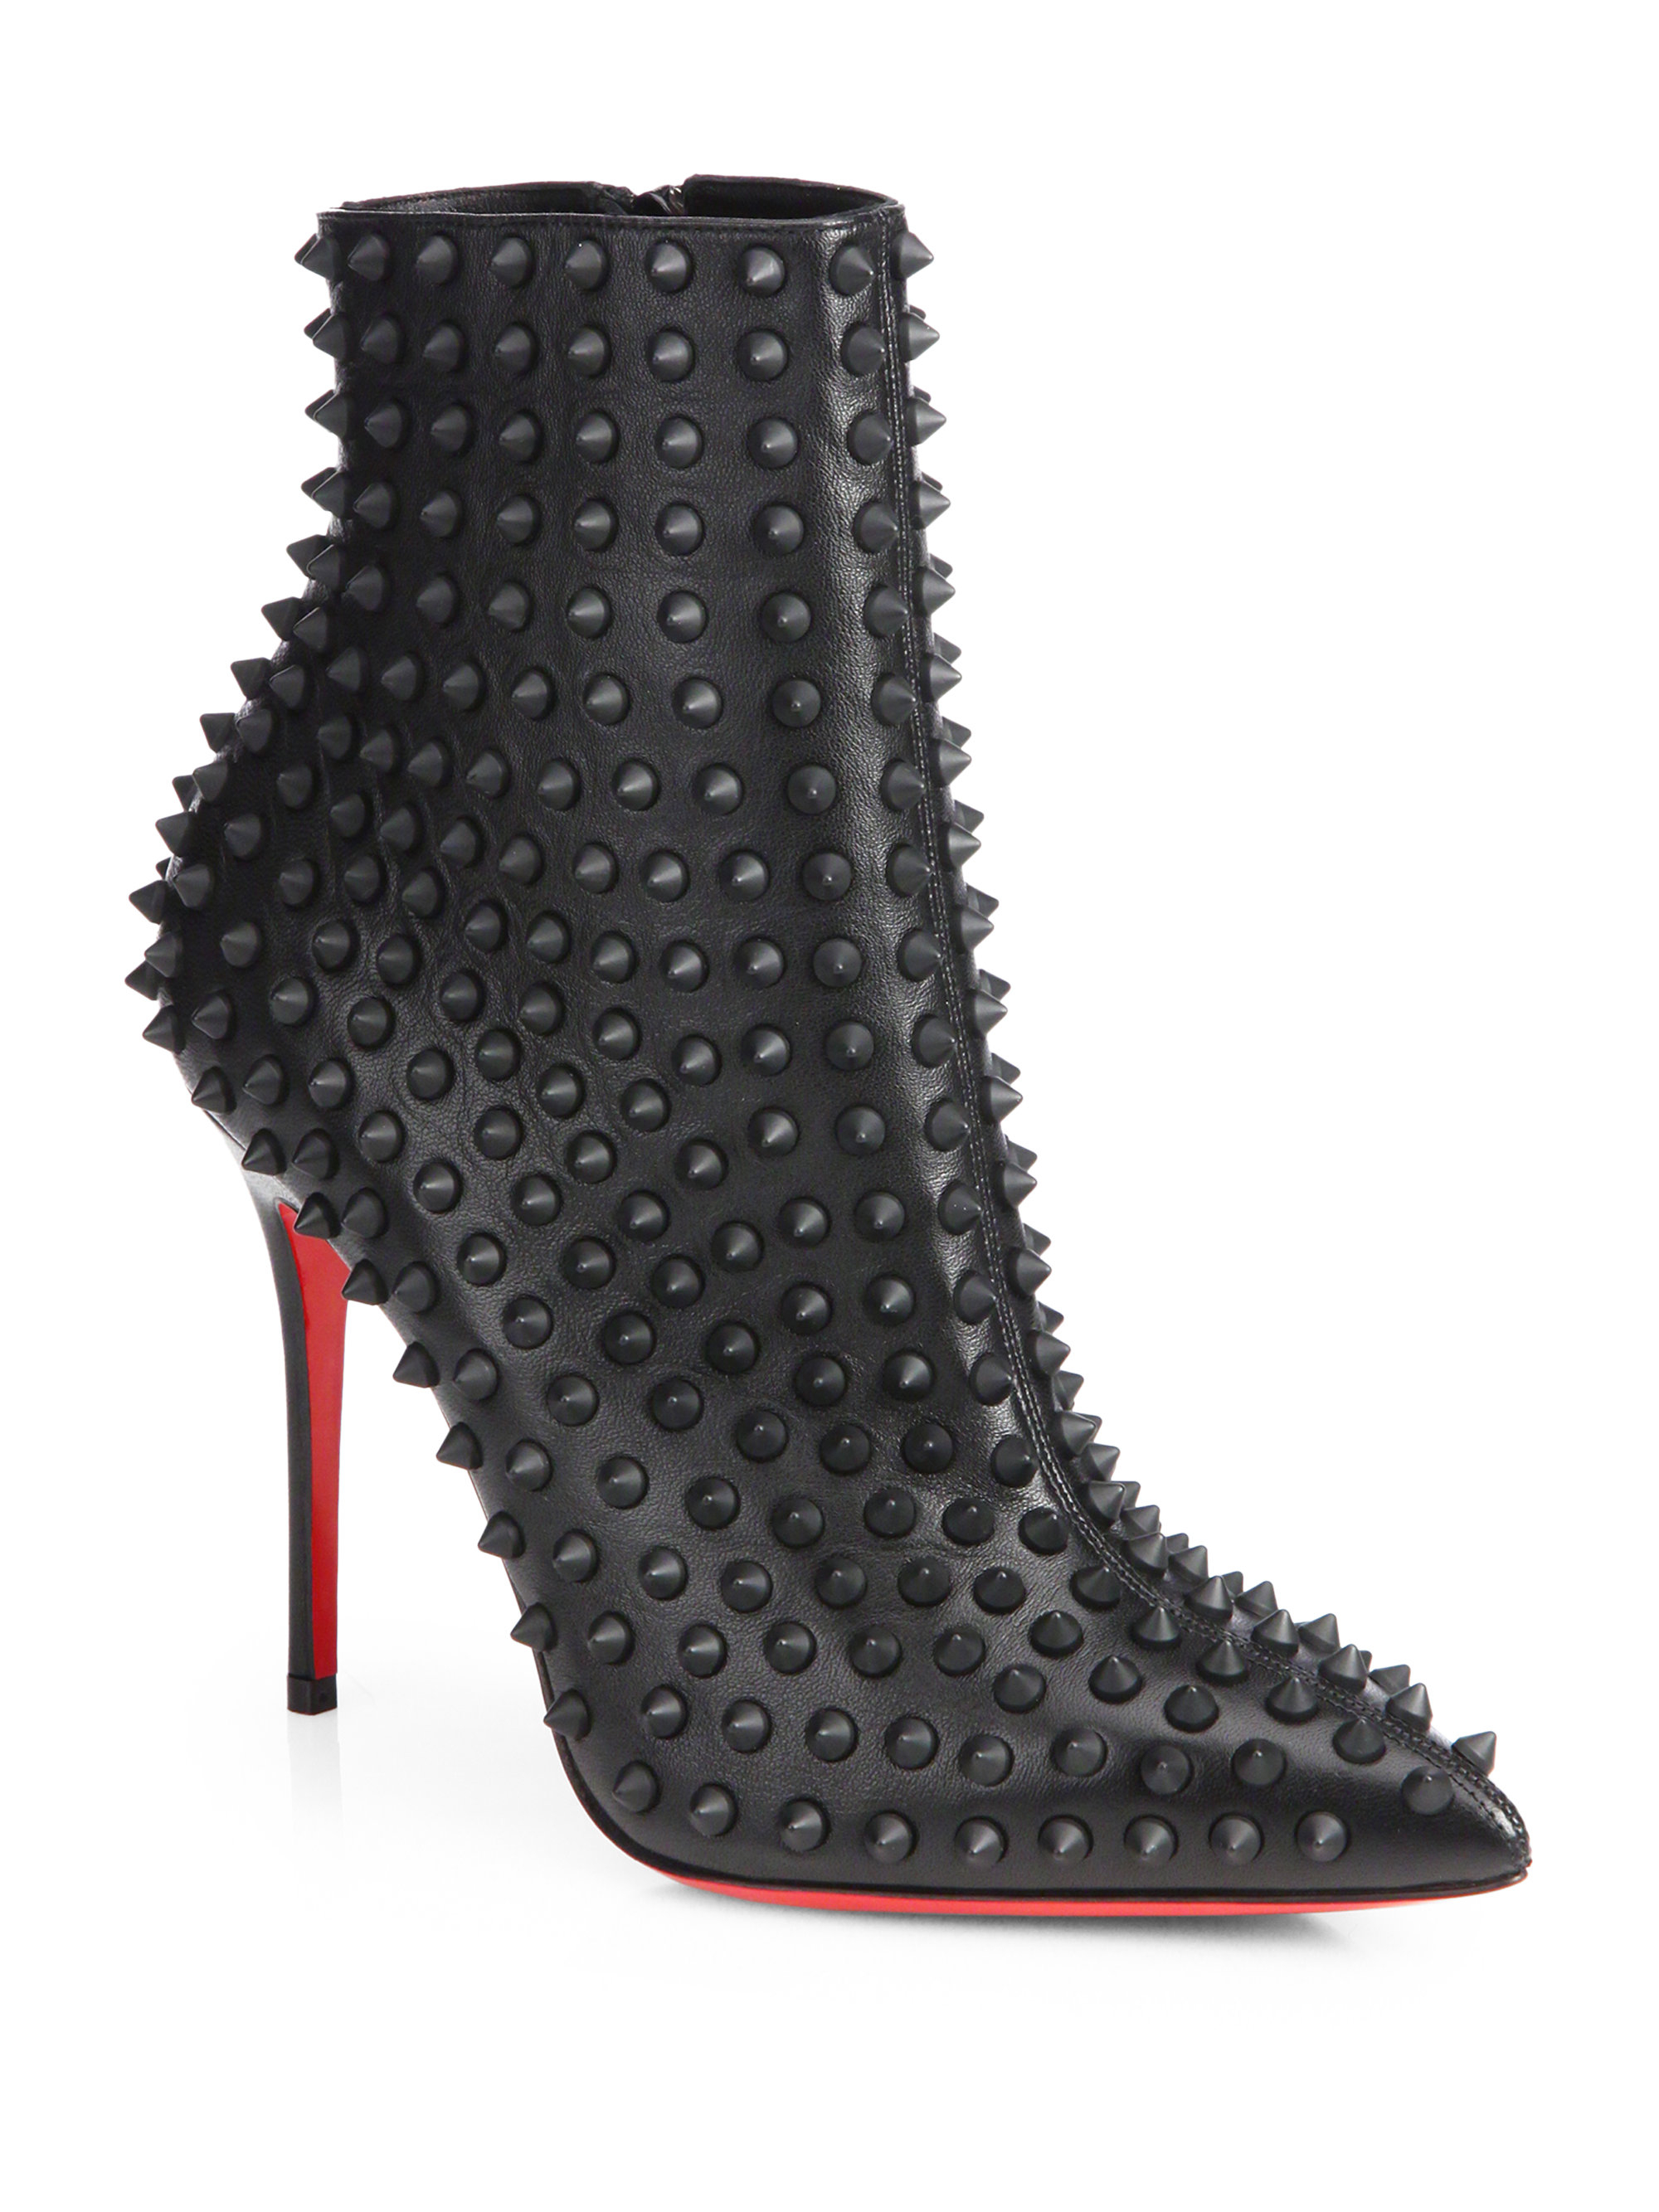 newest ec48f 45cb4 Christian Louboutin Black Snakilta Spiked Leather Ankle Boots